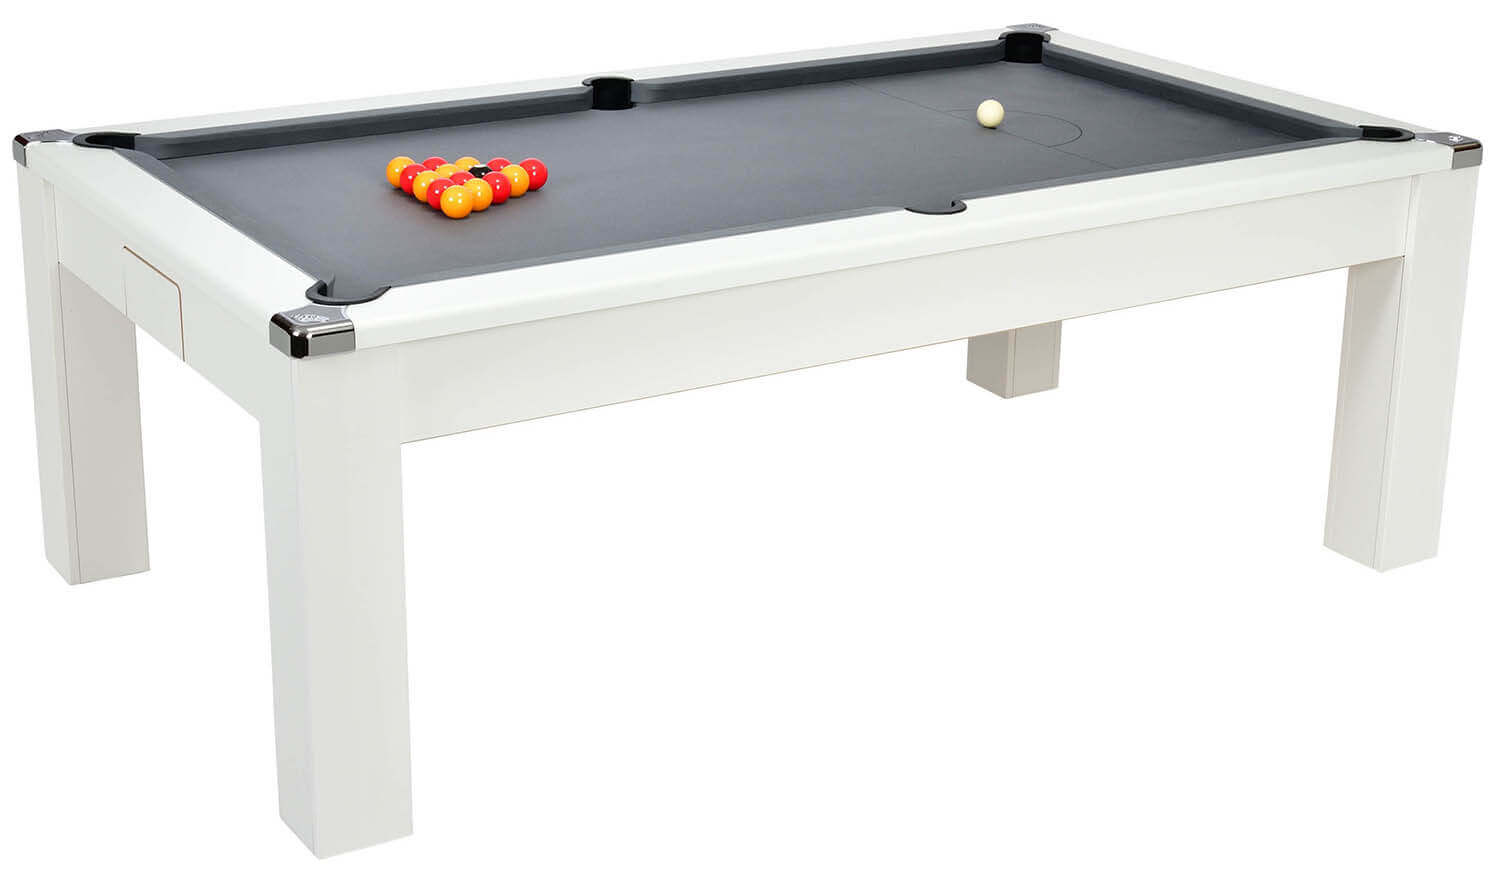 Avant garde pool dining table 6 ft 7 ft liberty games for Table 6 of gstr 1